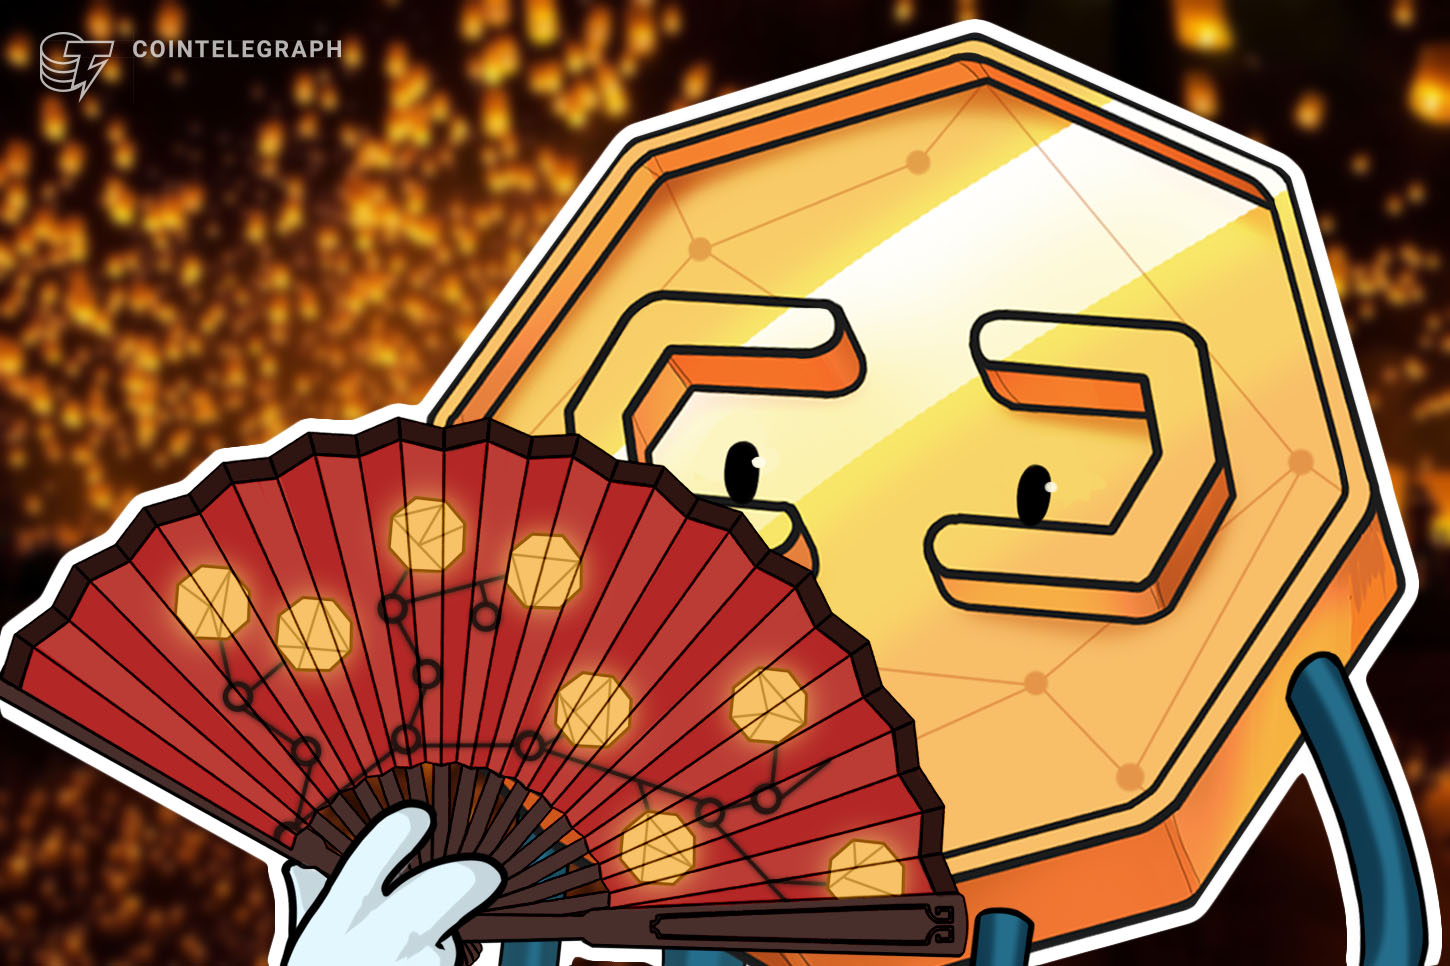 Crypto has recovered from China's FUD nearly two dozen times in the last 12 years